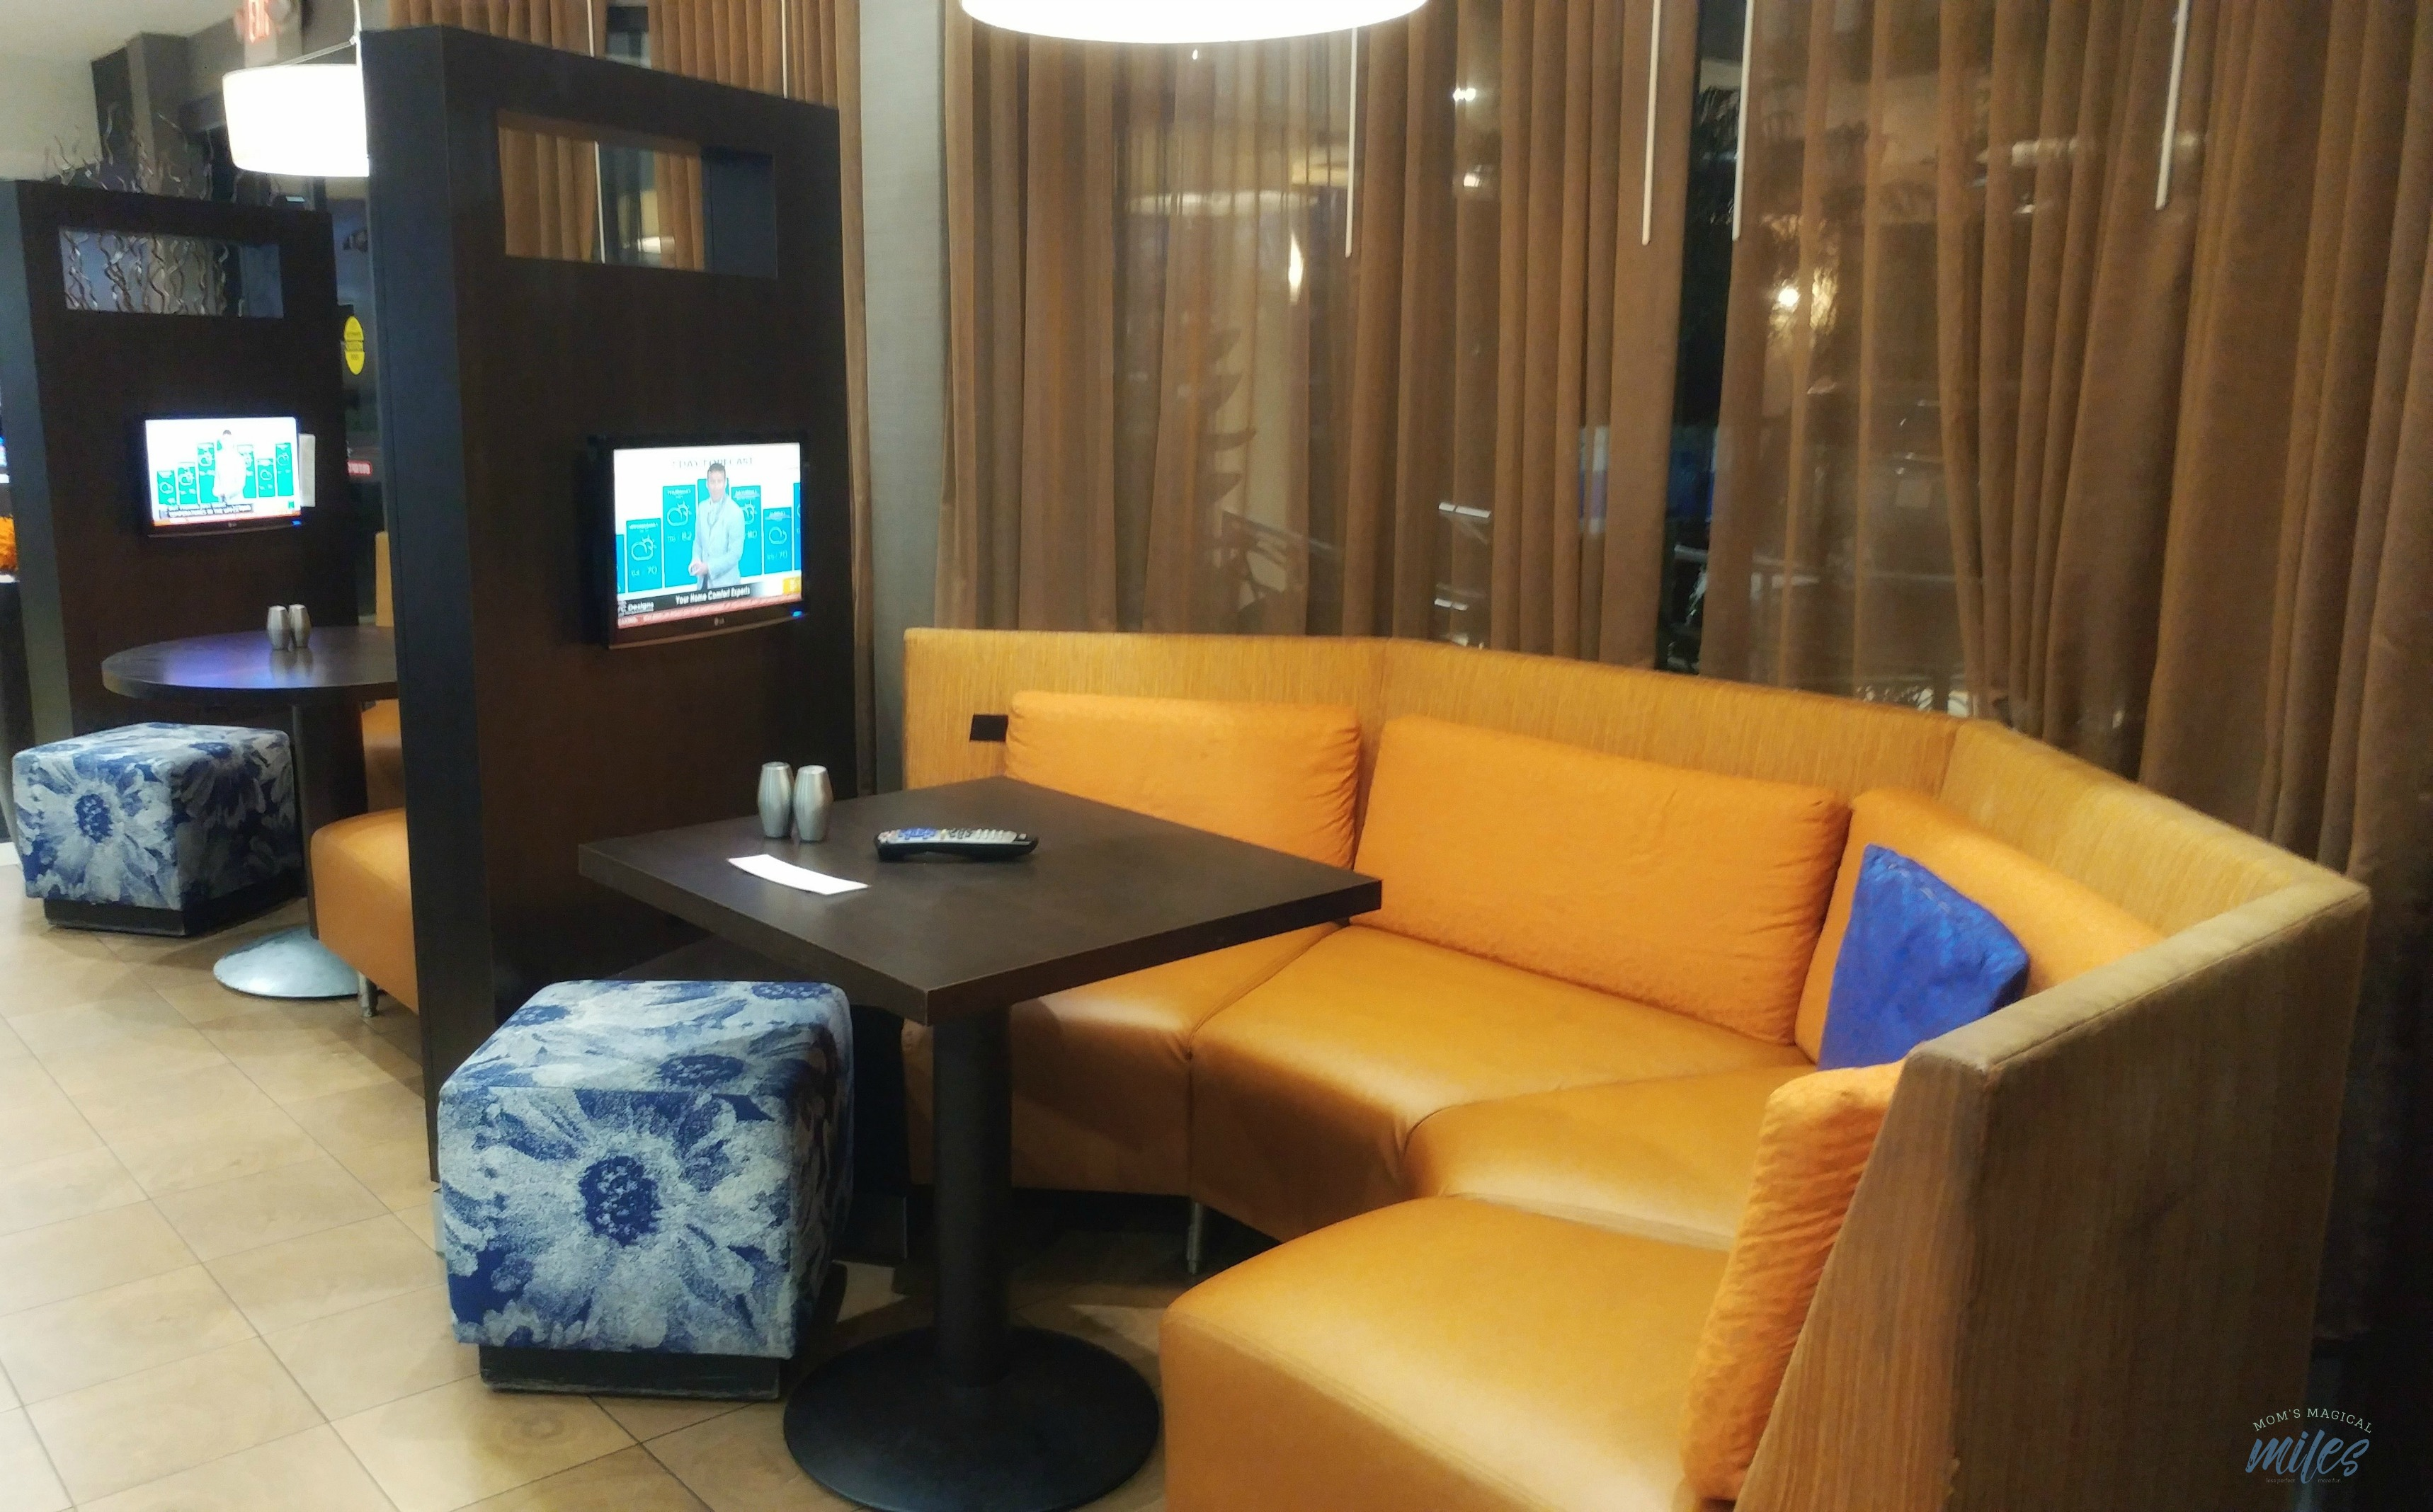 The Marriott Courtyard Mayo Clinic in Jacksonville, FL has intimate seating areas for personal viewing.